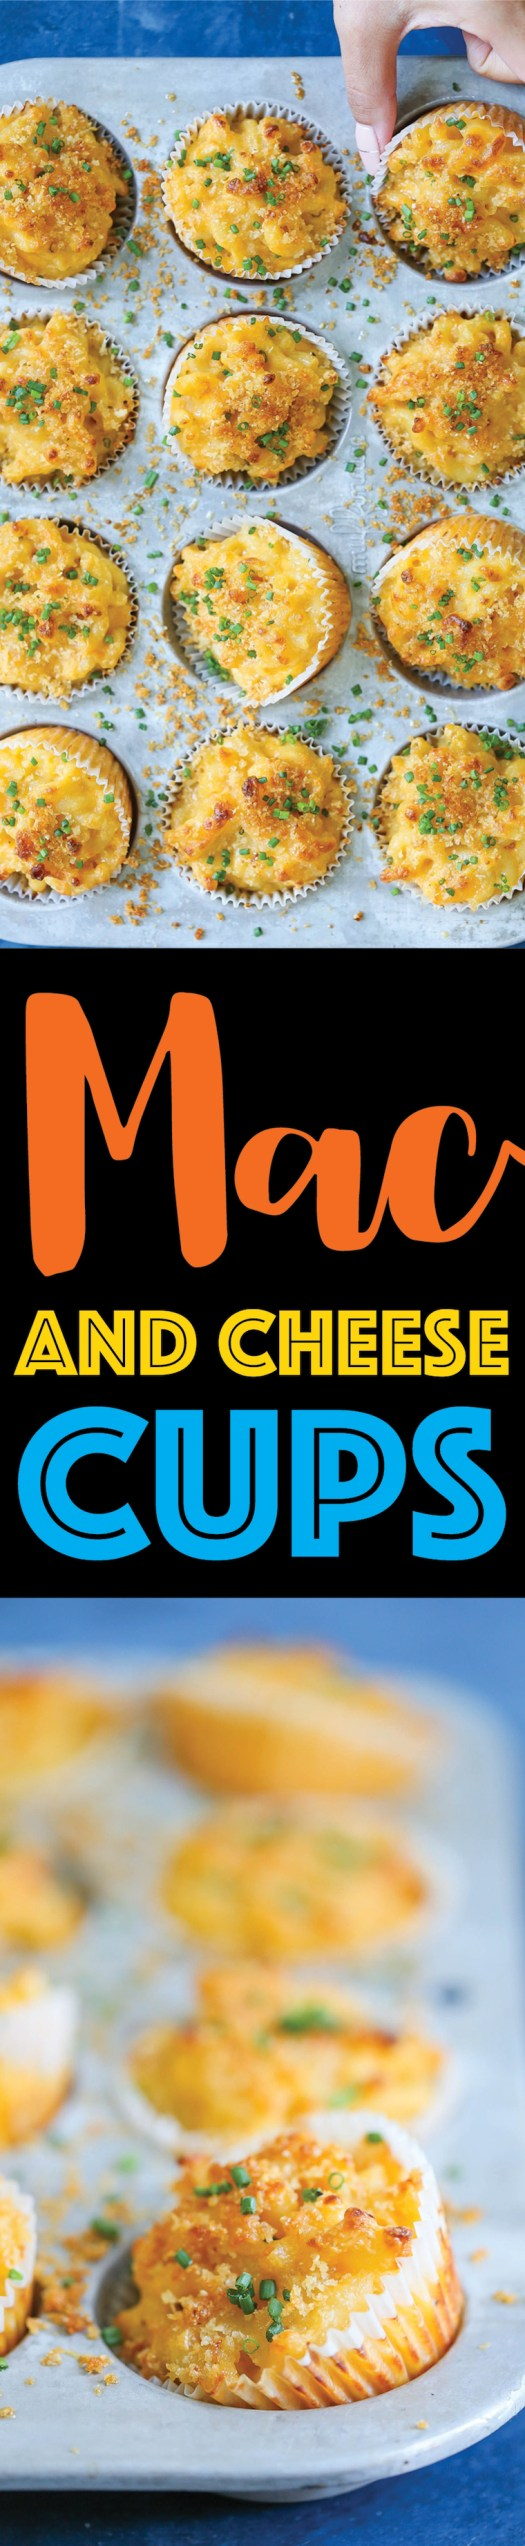 Mac and Cheese Cups- Macaroni and cheese baked to perfection in muffin tins! Great for holidays and lunch boxes – it's portable and makes for easy serving!